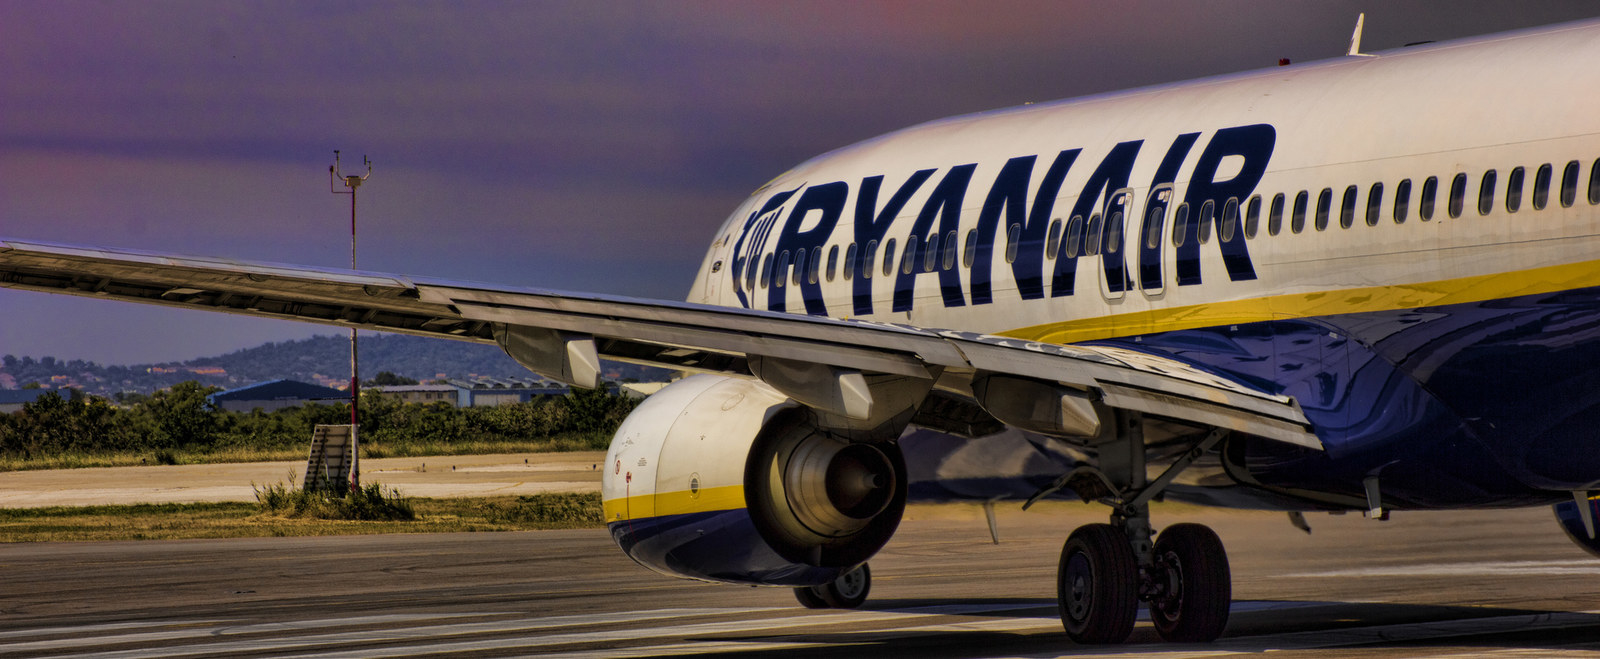 ryanair the southwest of european airlines case essay Easyjet and ryanair flying high on the southwest model essay - easyjet and ryanair flying european airlines, ryanair mcdonalds business case analysis essays.